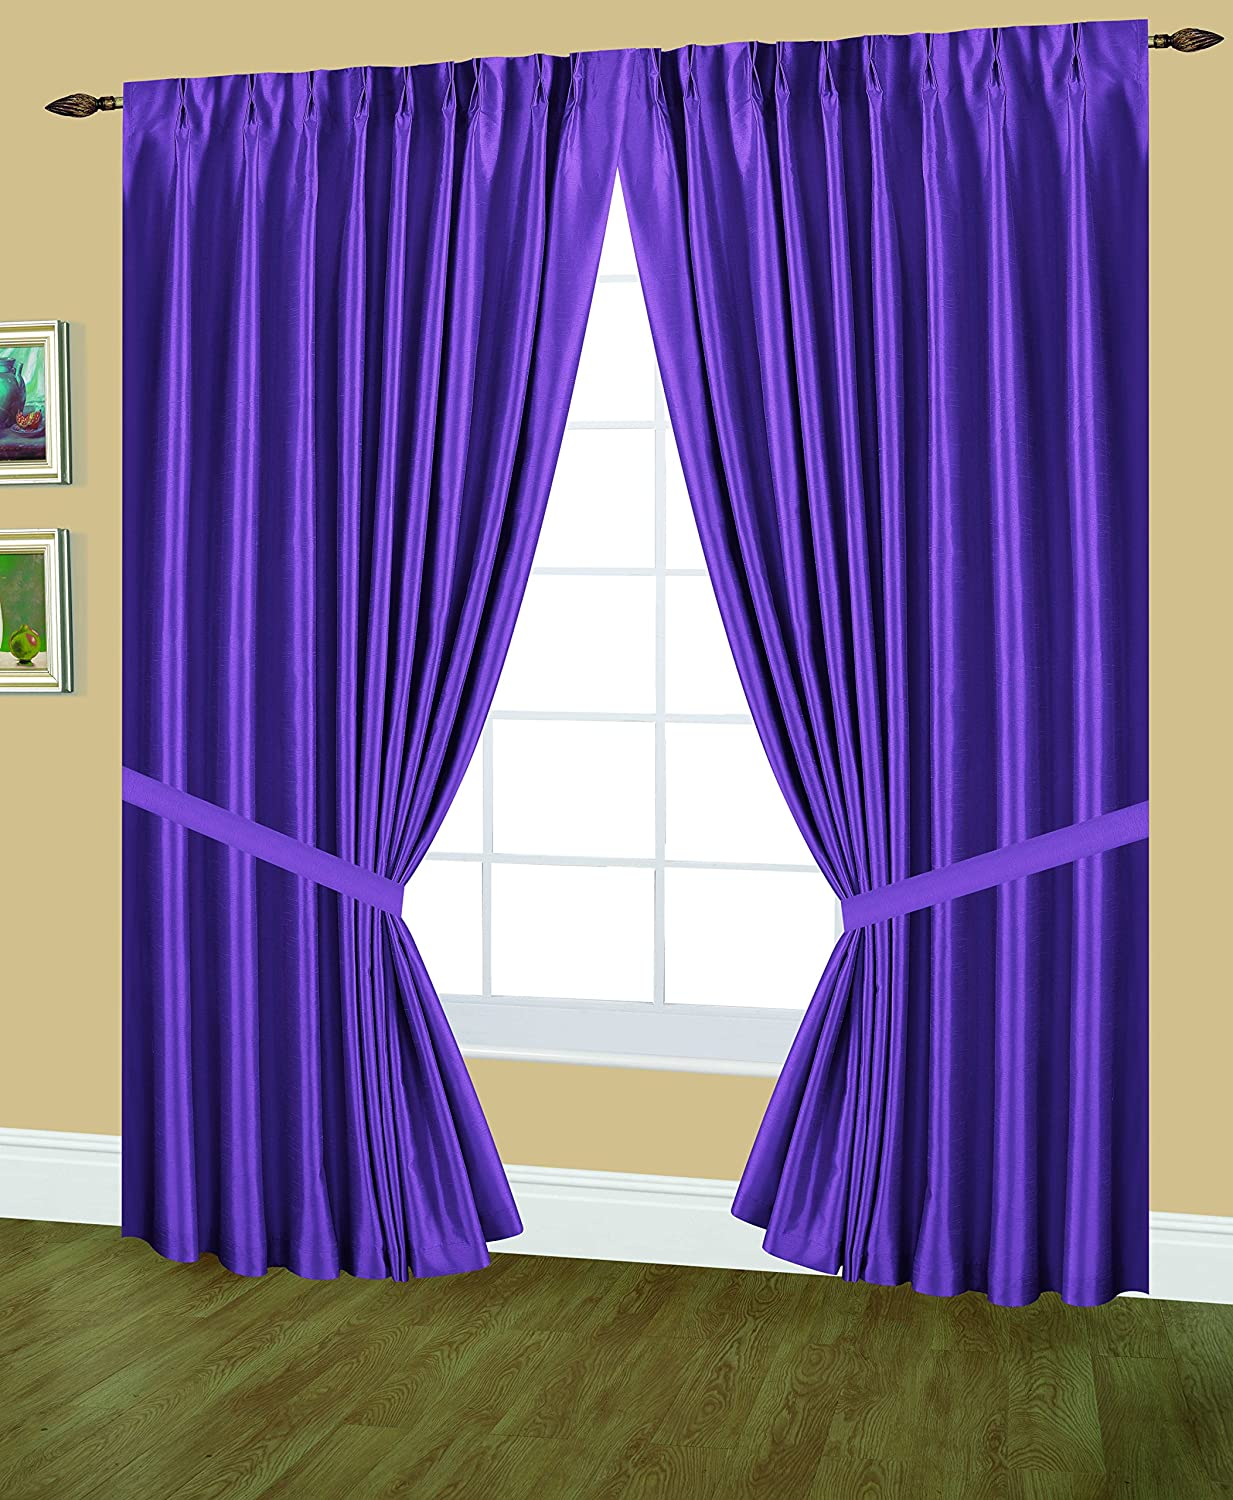 Editex Home Textiles Elaine Lined Pinch Pleated Window Curtain, 96 by 84-Inch, Lilac